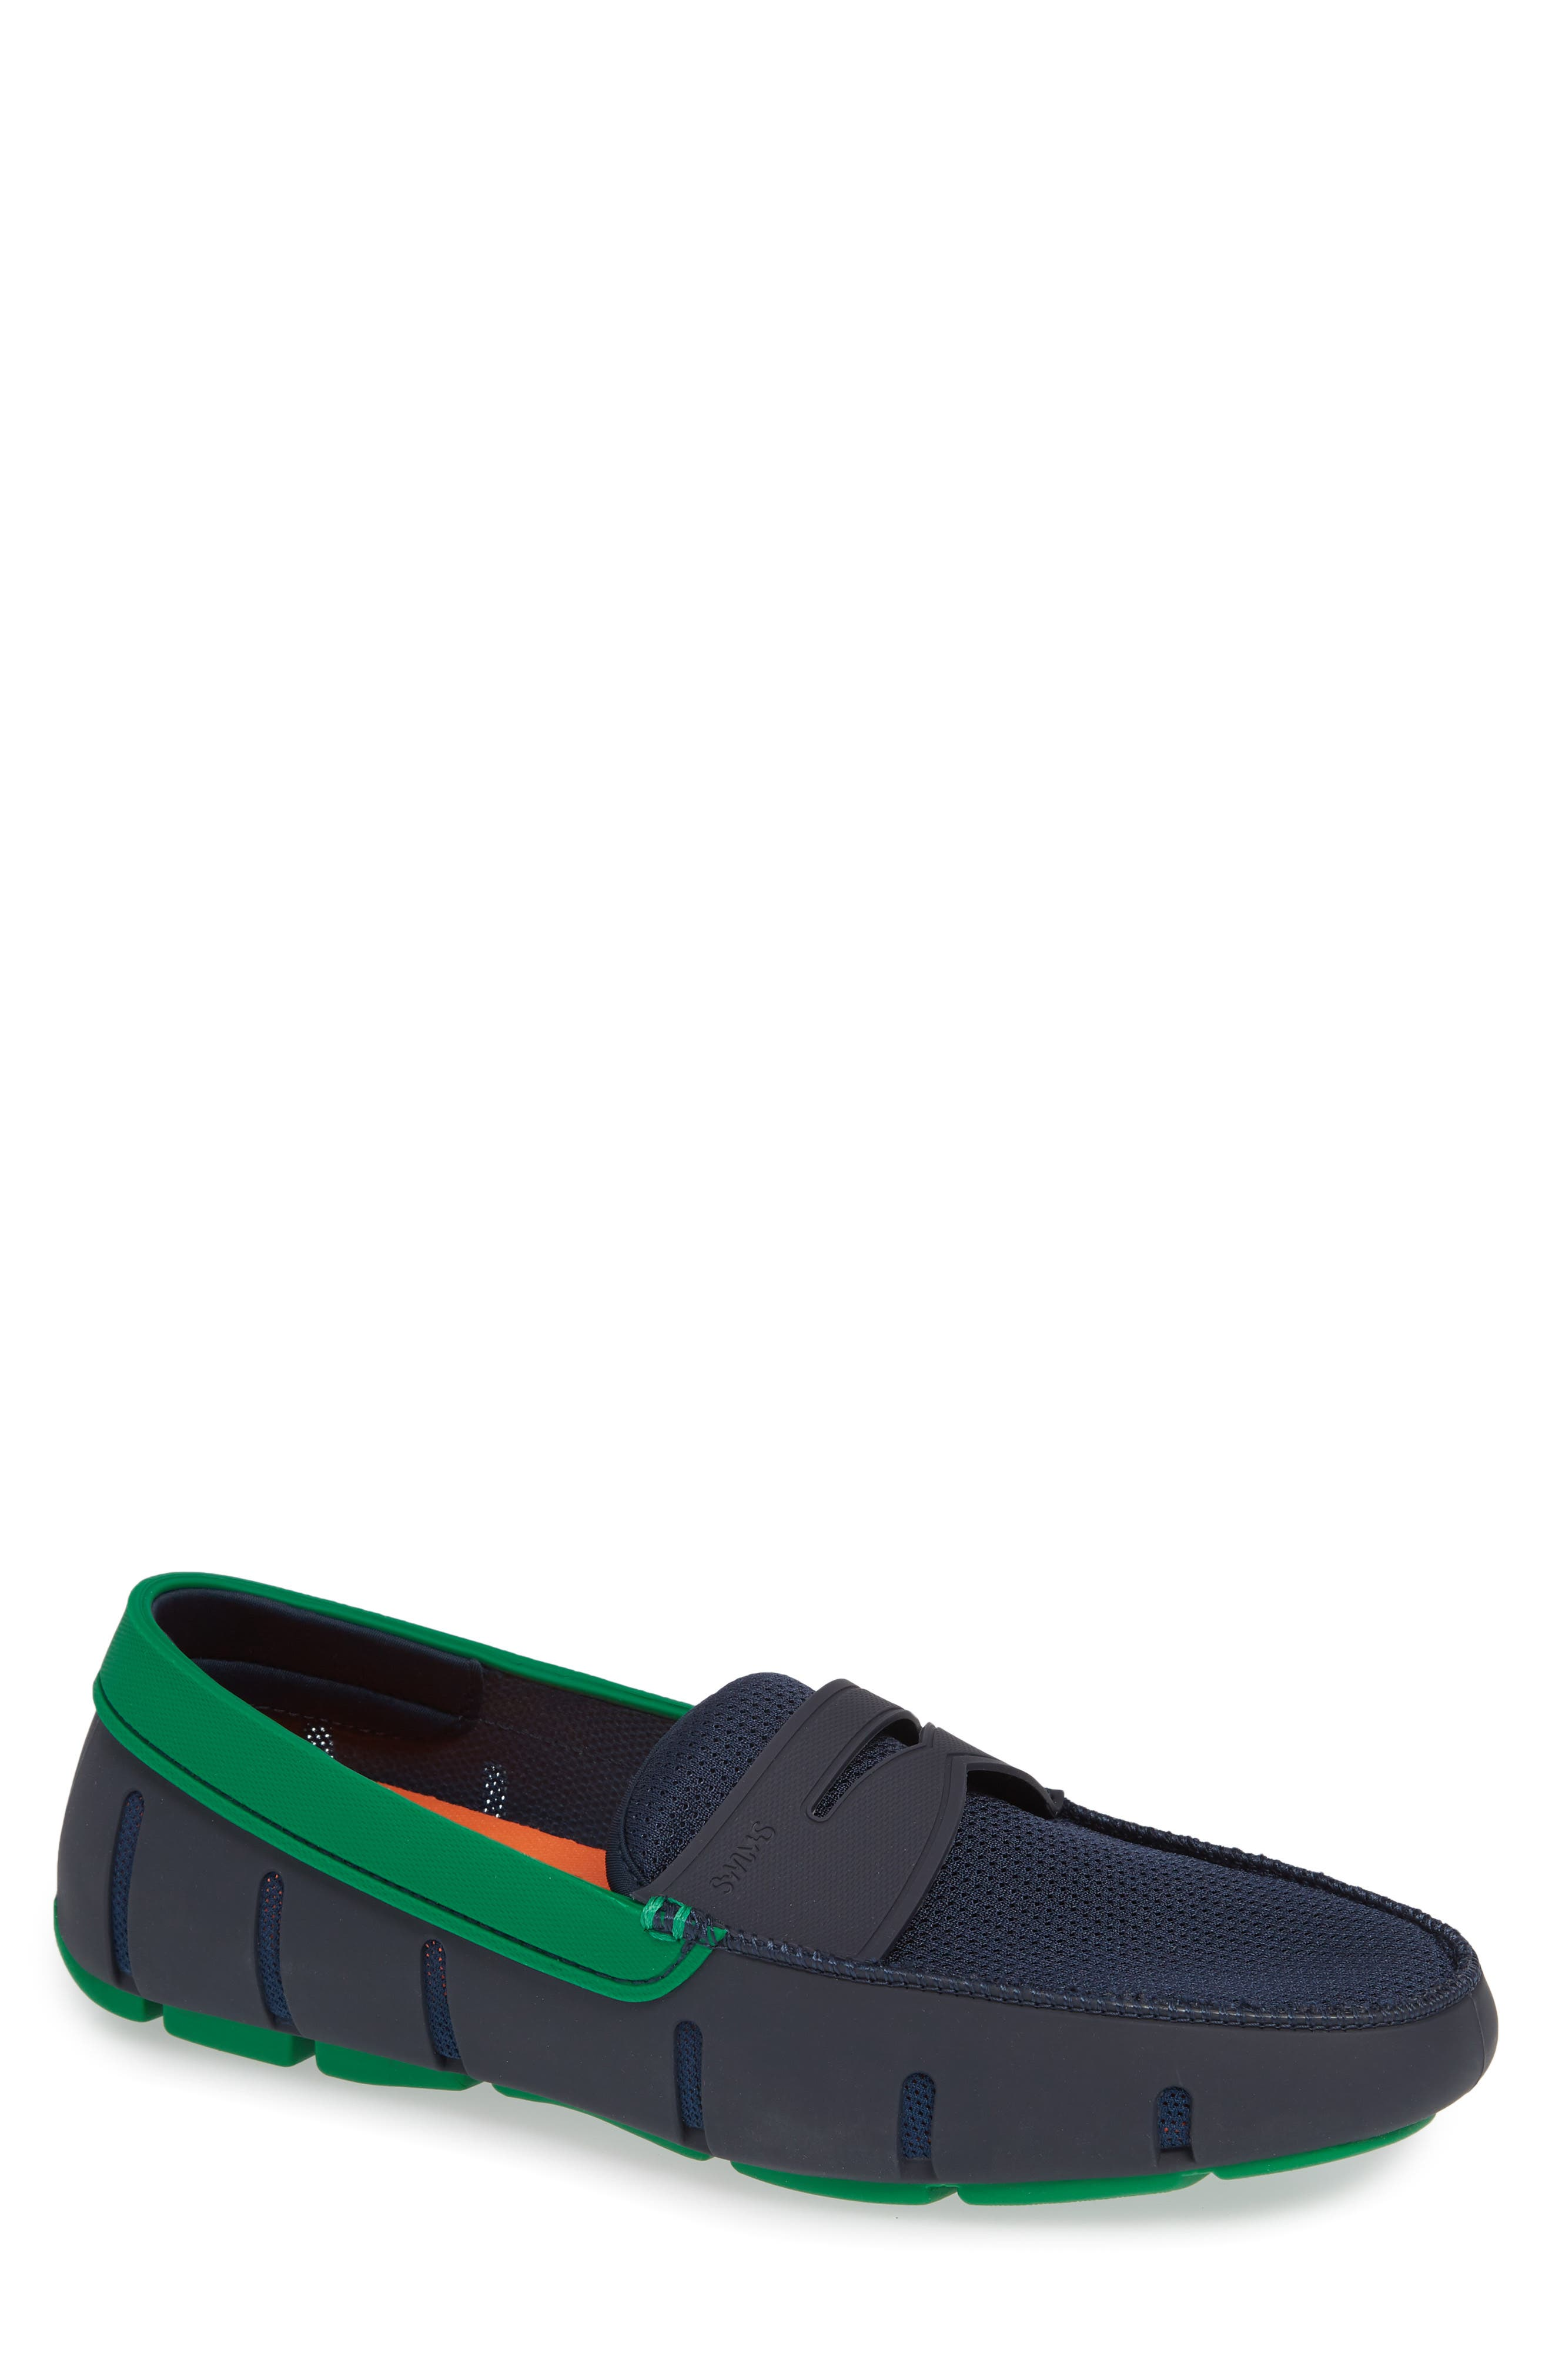 SWIMS Men'S Rubber Penny Loafer Water Shoes, Navy/Jolly Green in Navy/ Jolly Green